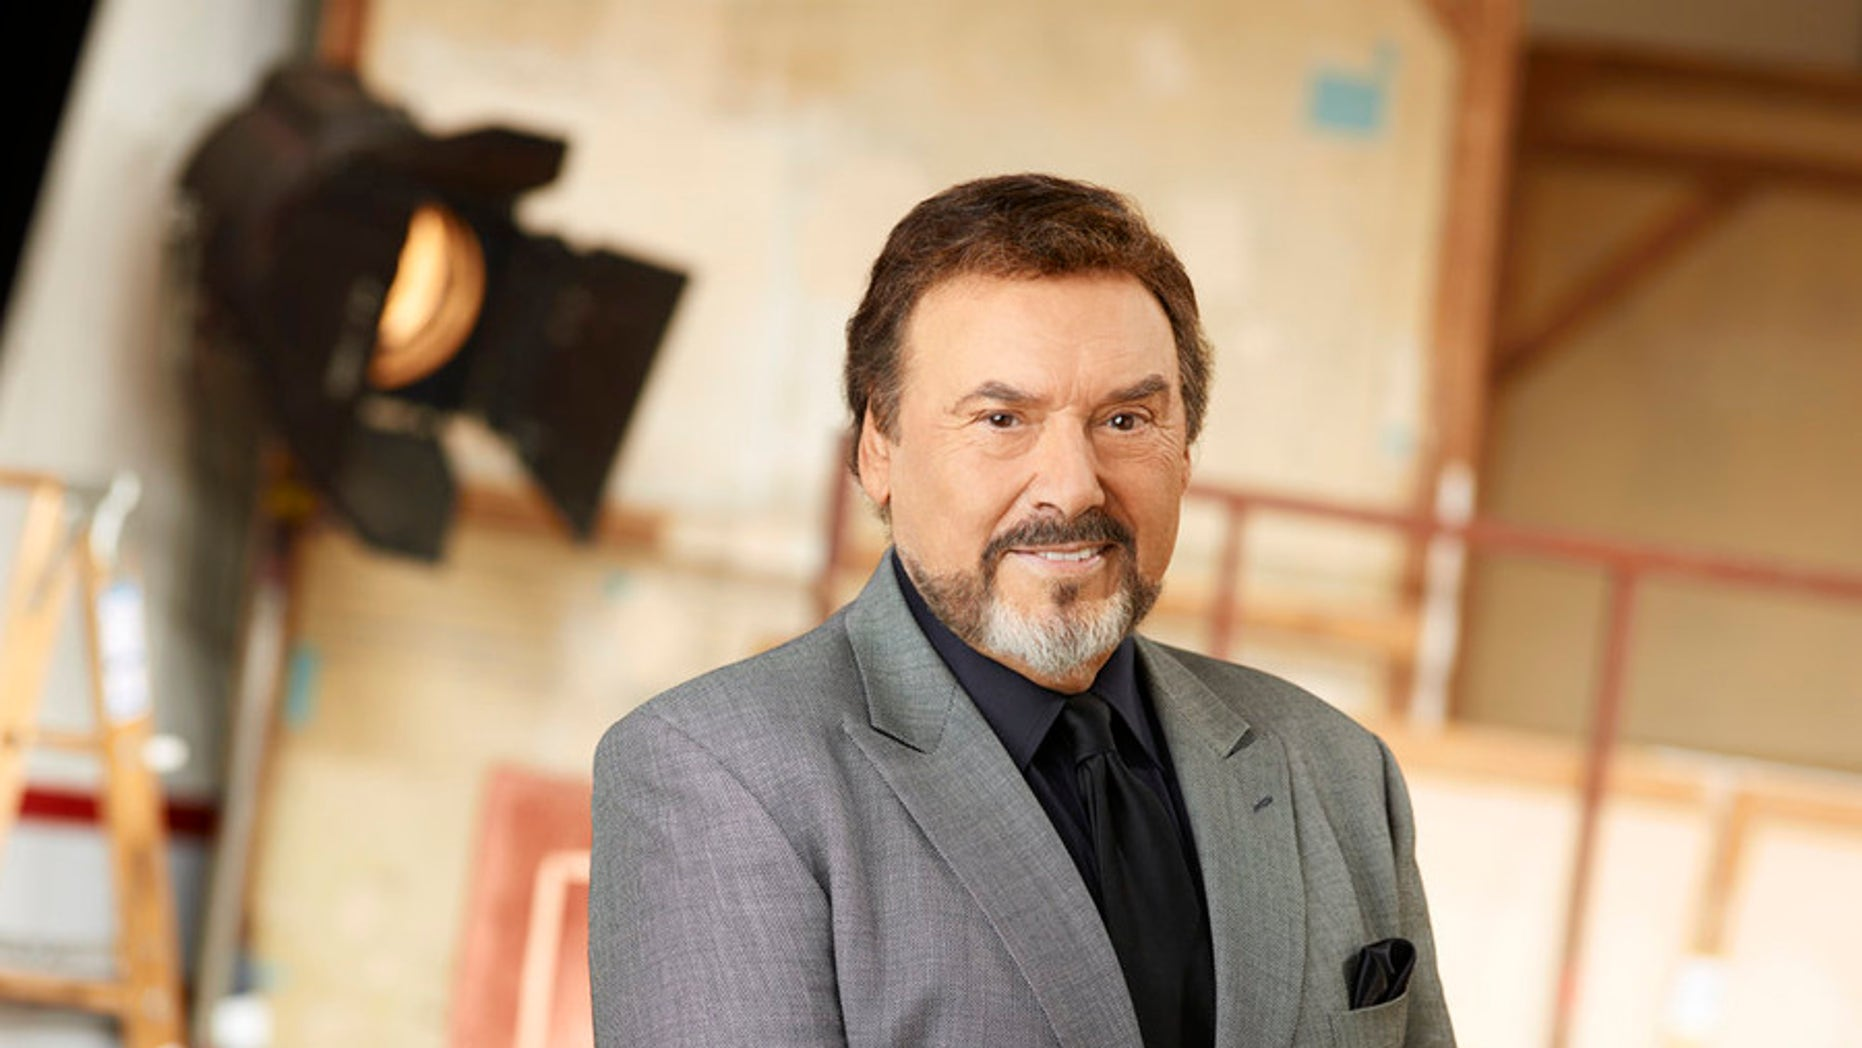 """Days of Our Lives"" actor Joseph Mascolo has died at the age of 87."